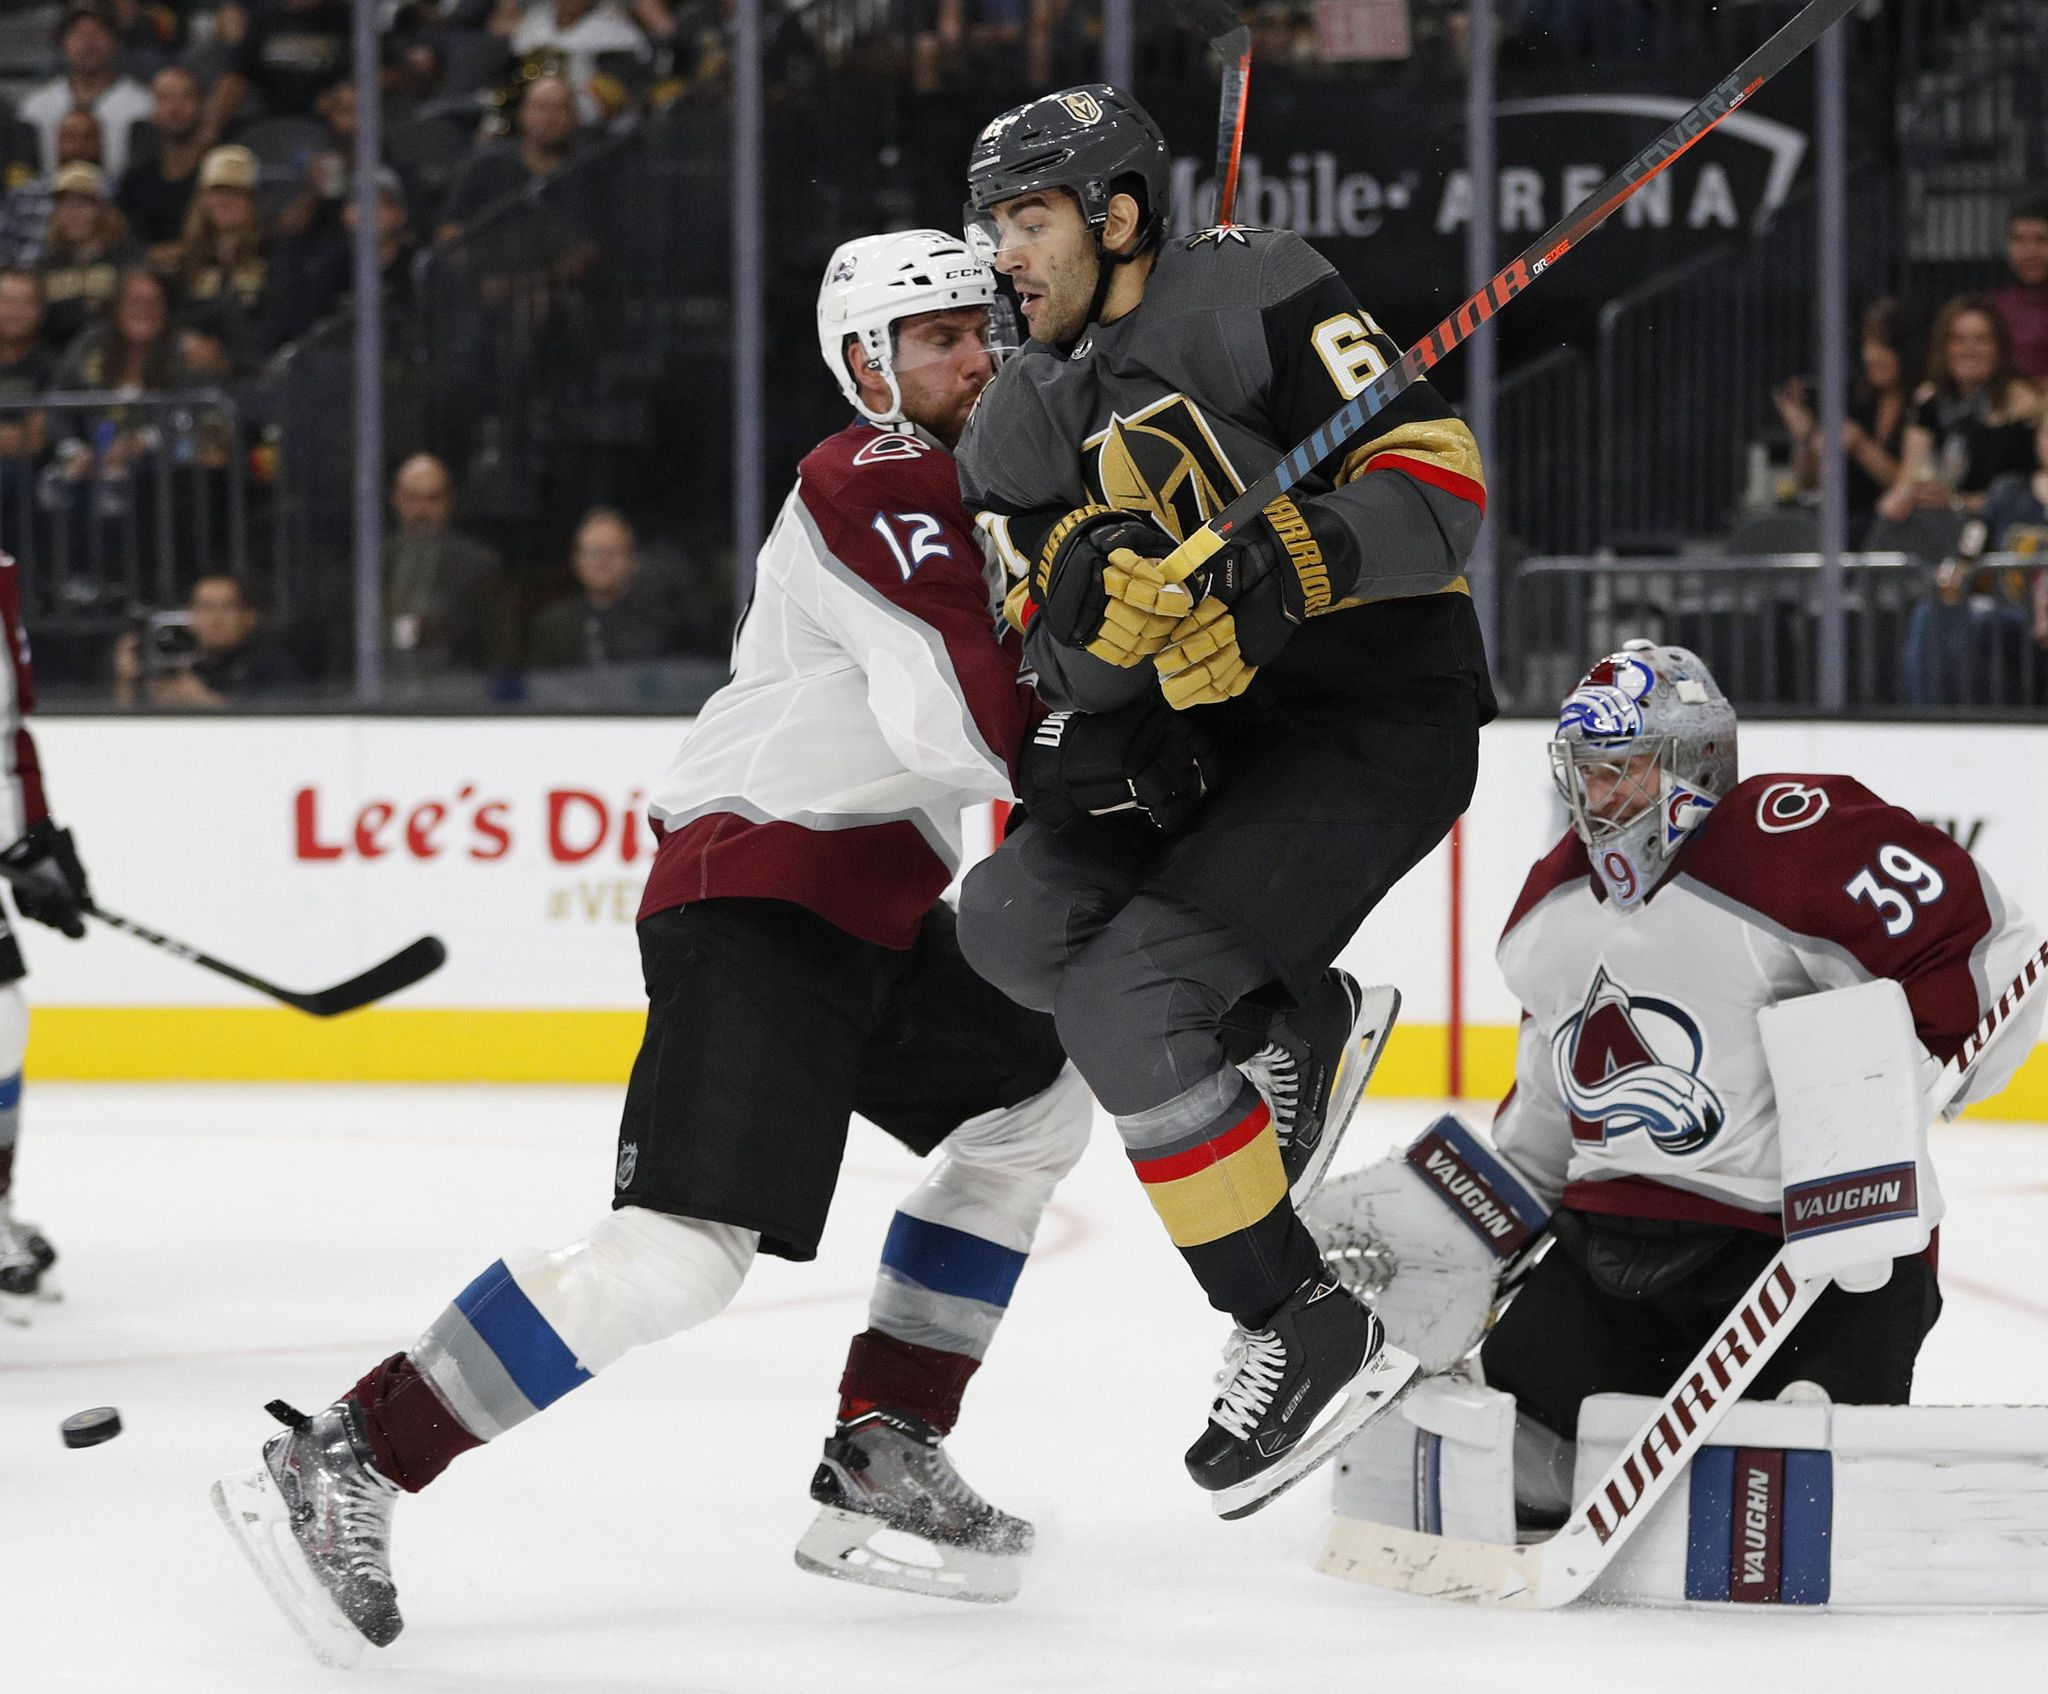 Vegas_golden_knights_preview_hockey_66537_s2048x1694